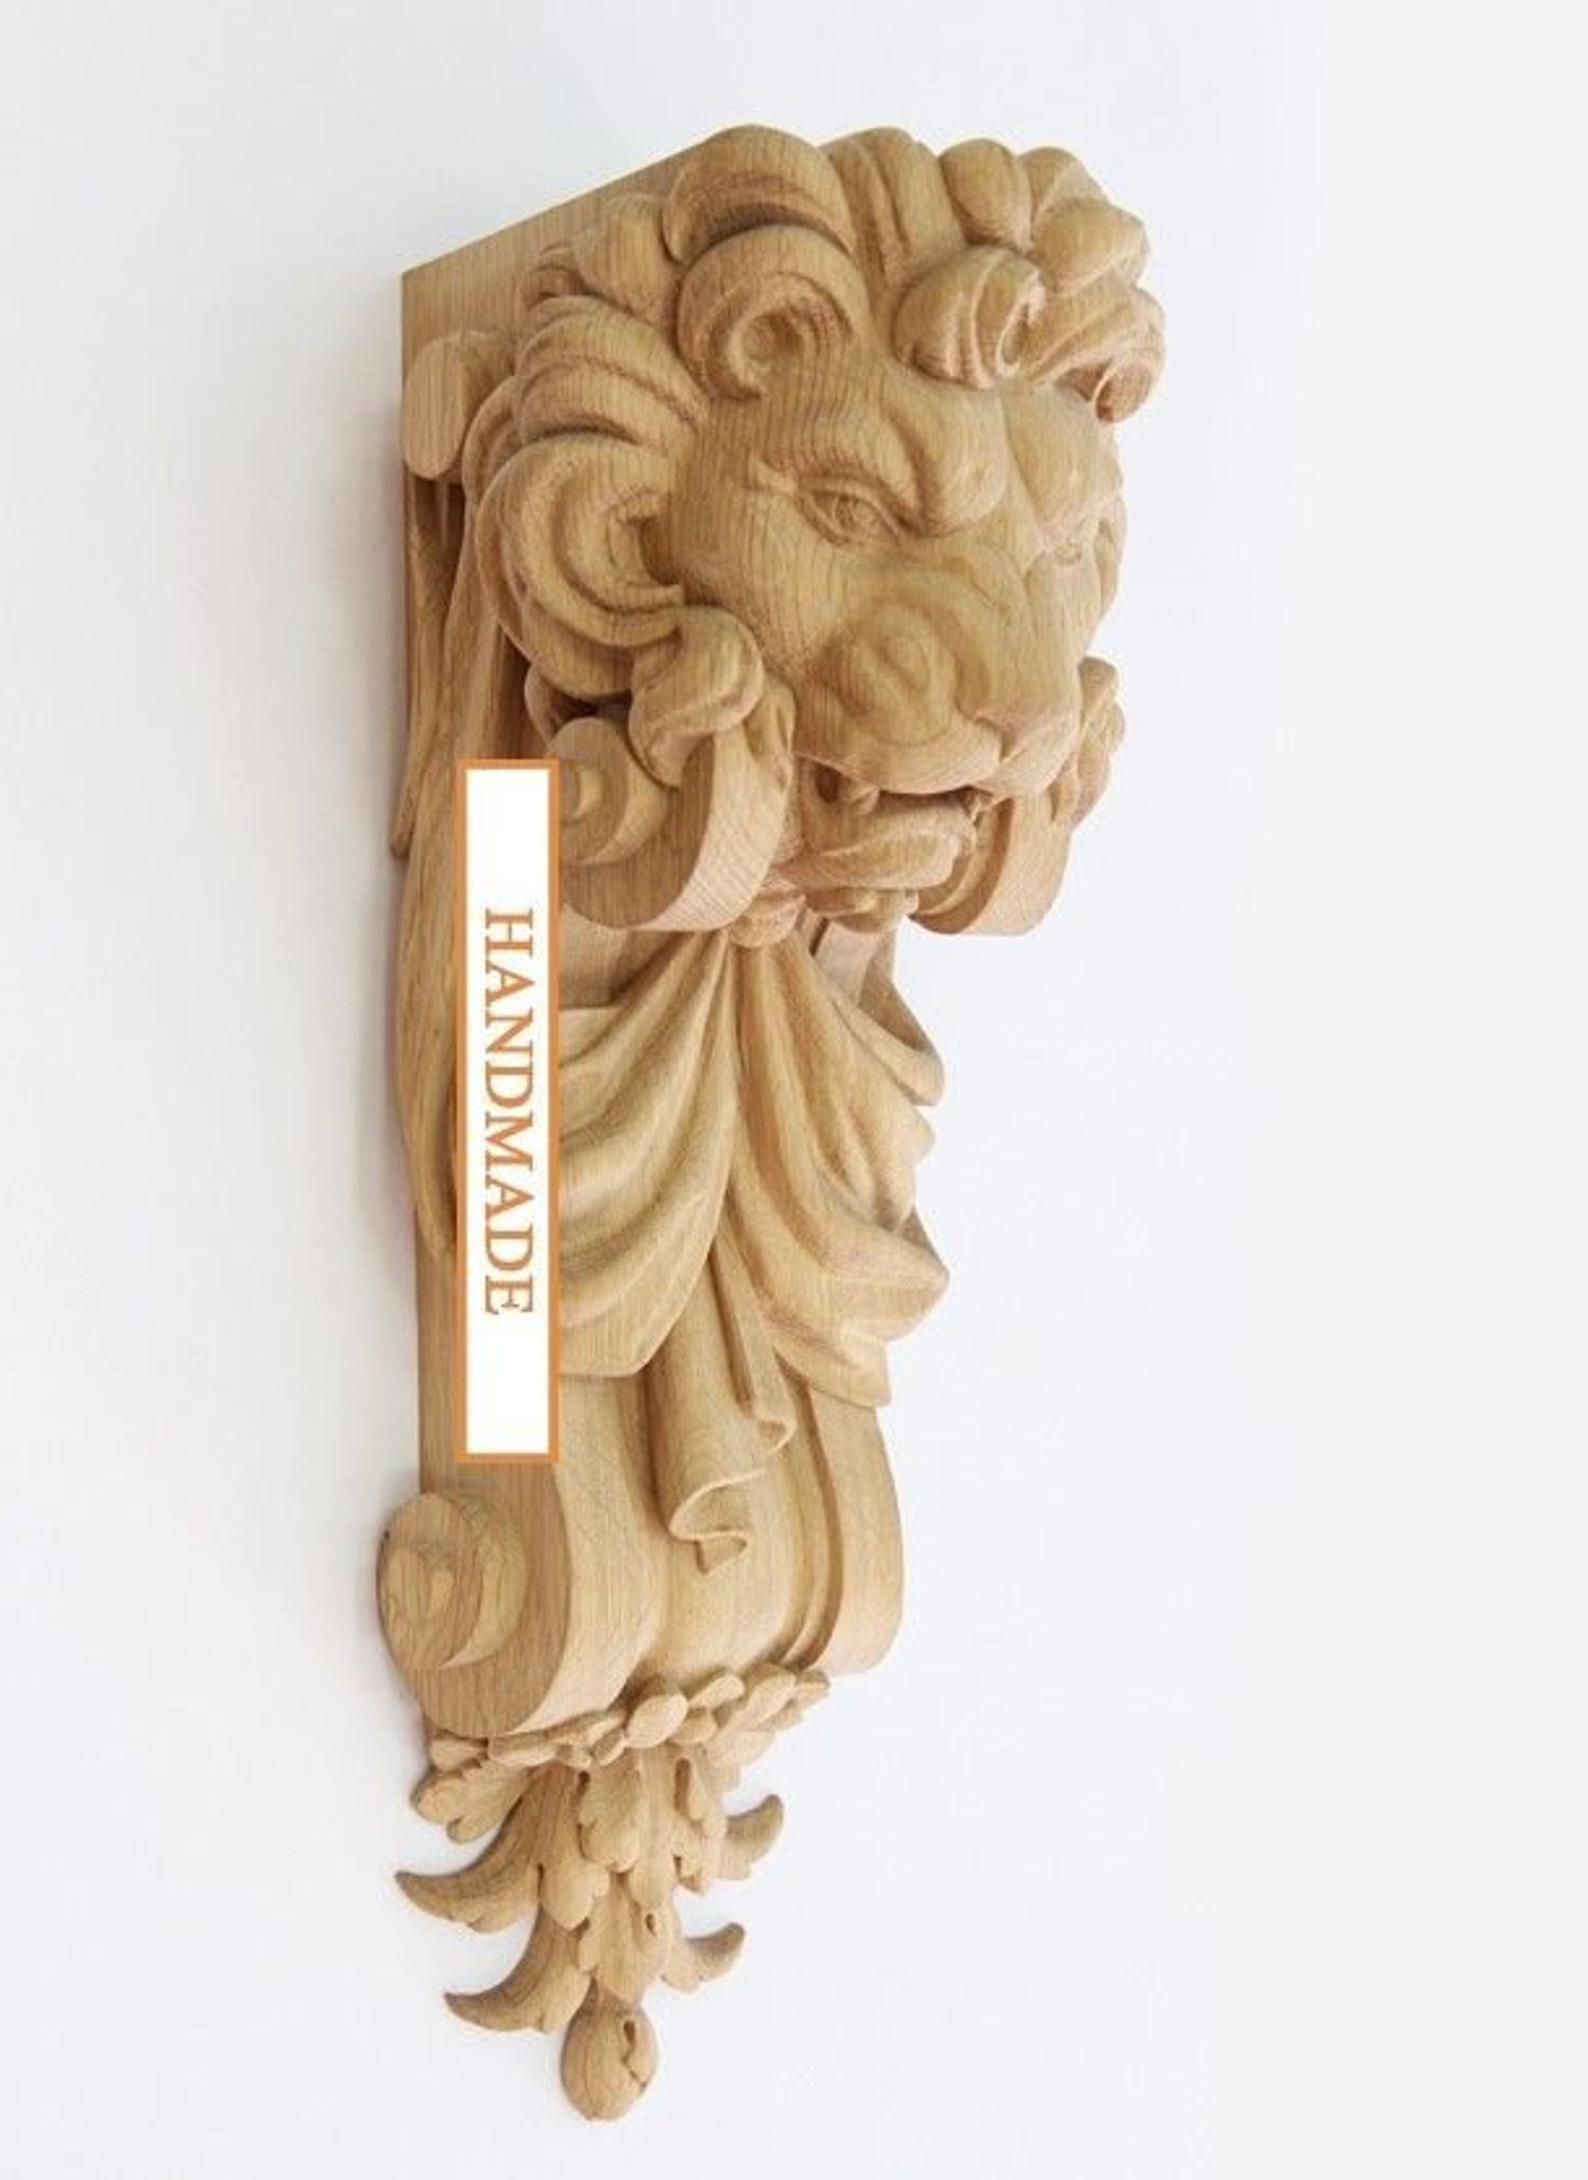 Pair Carved Wooden Corbels Lionunfinished Decorative Kitchen Etsy Corbels Carving Wooden Corbels